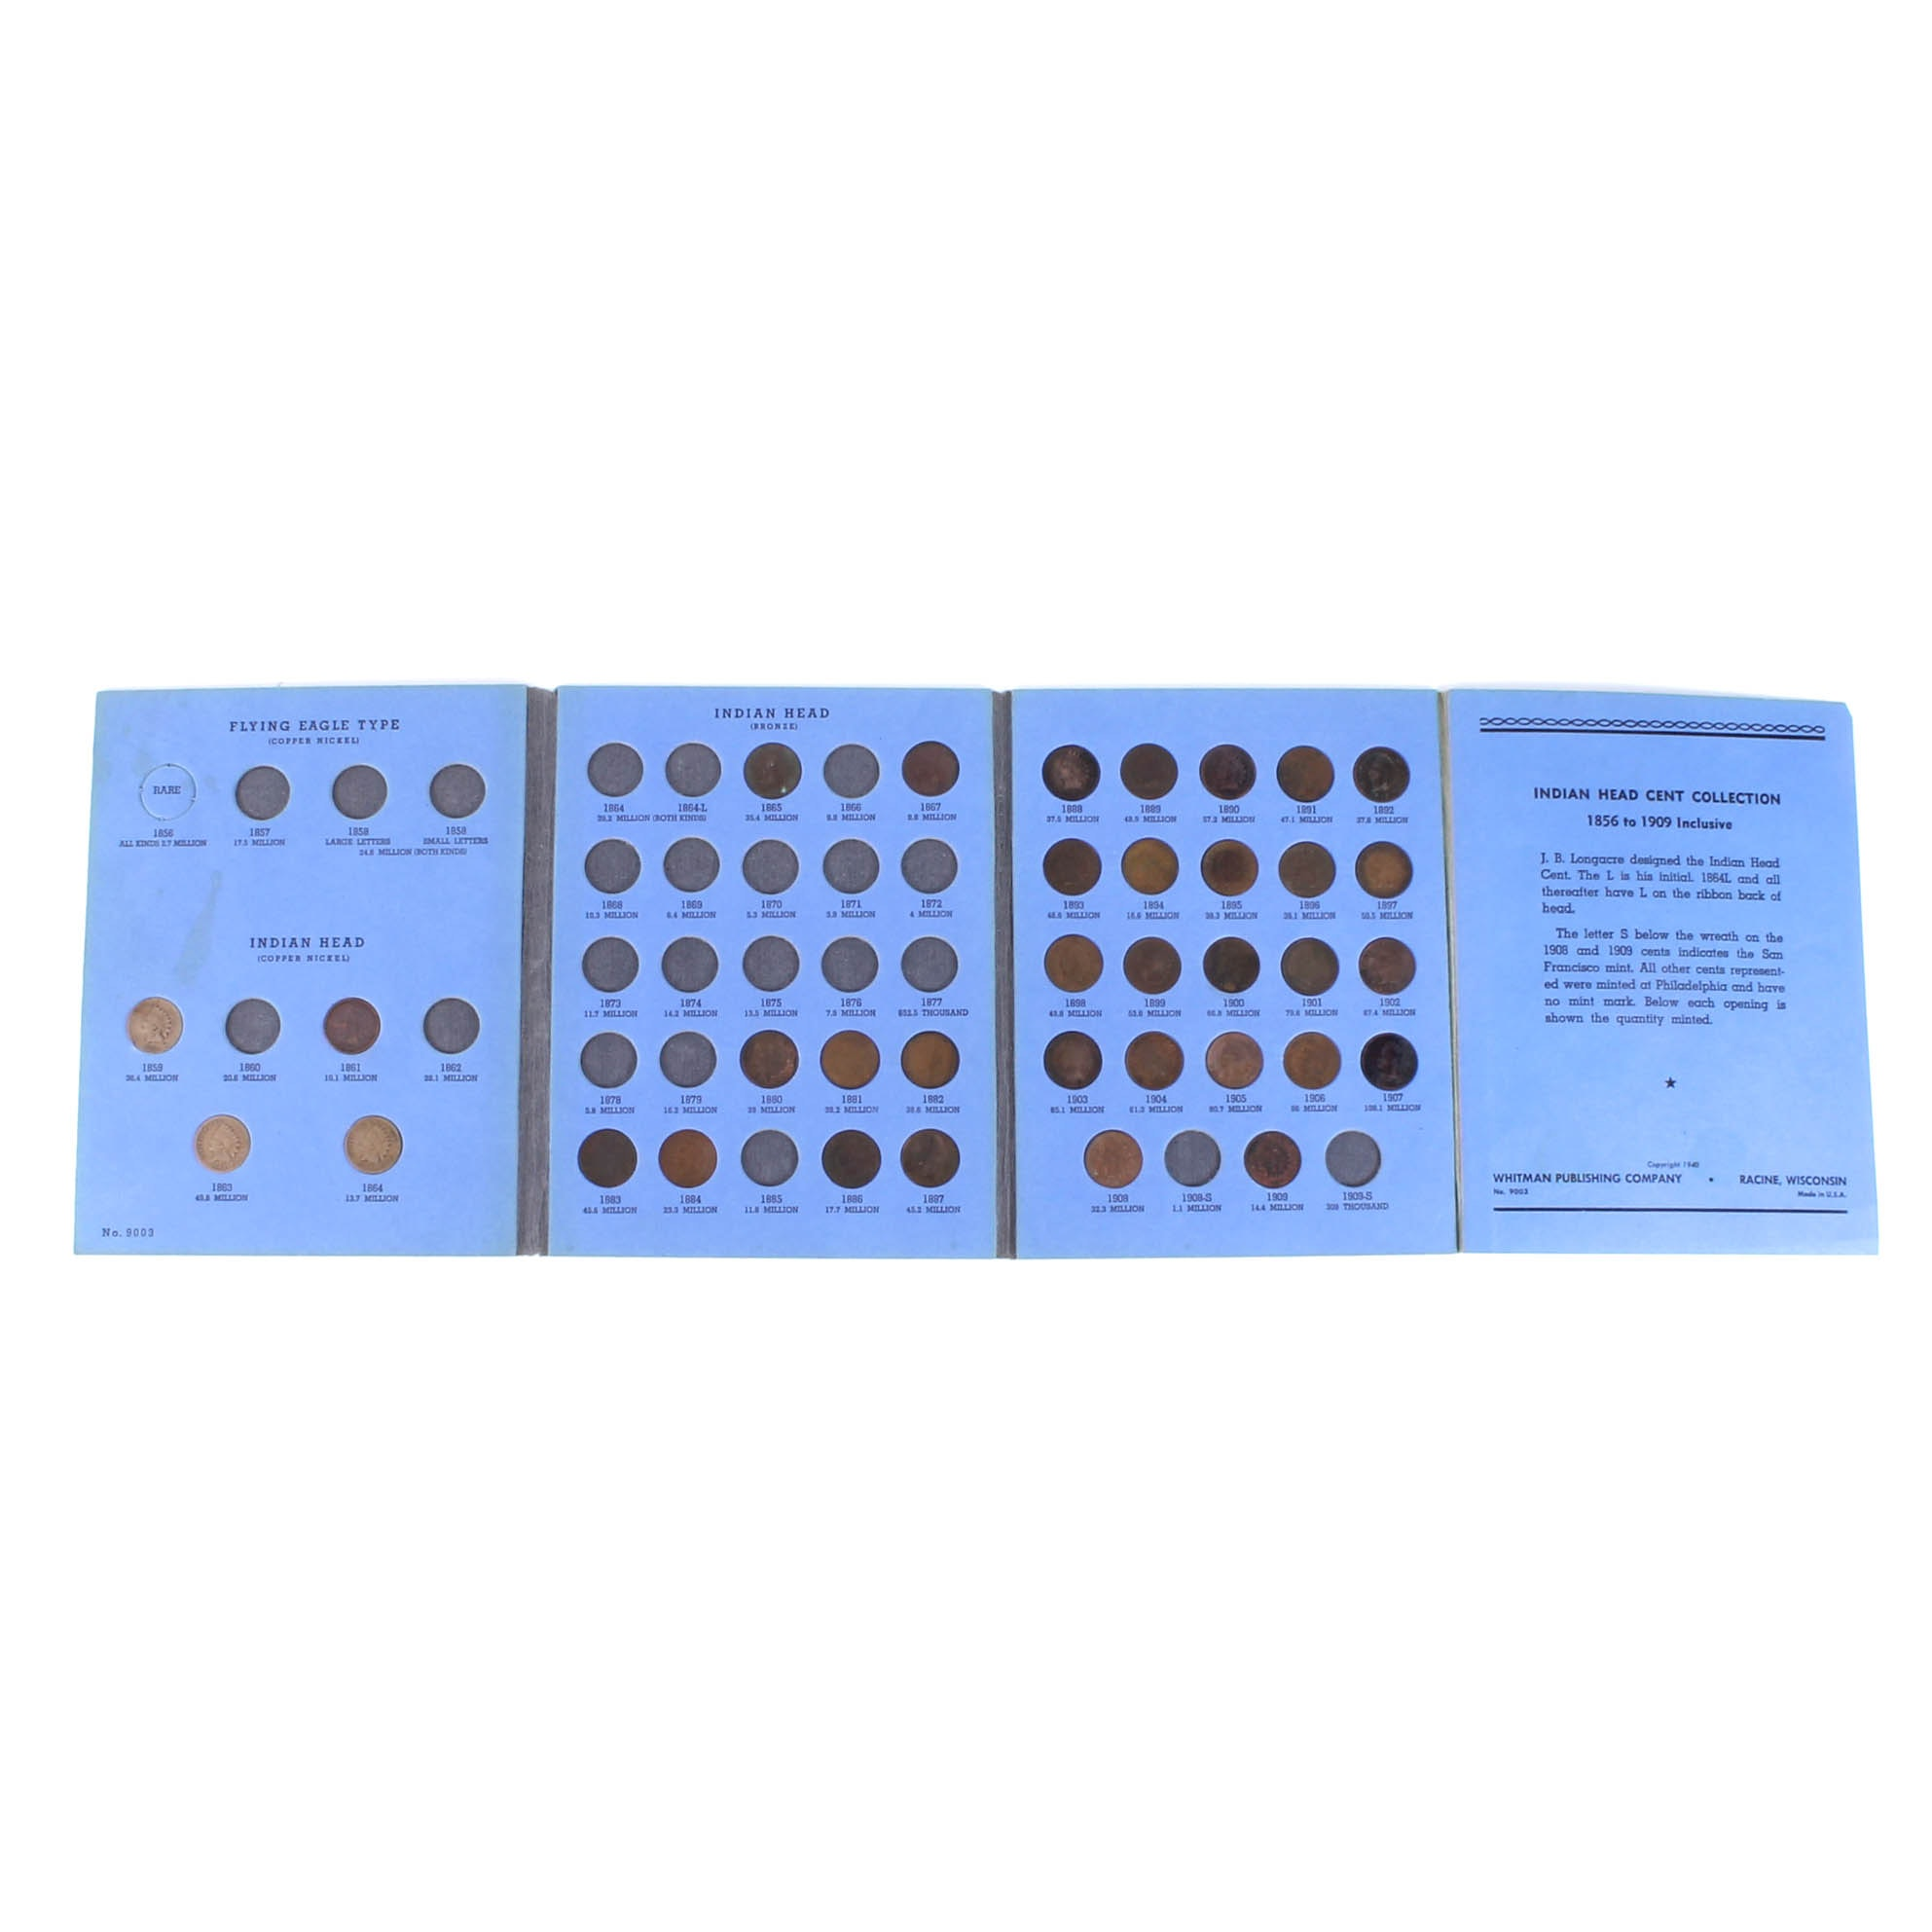 Indian Head Penny Collection in Whitman Folder